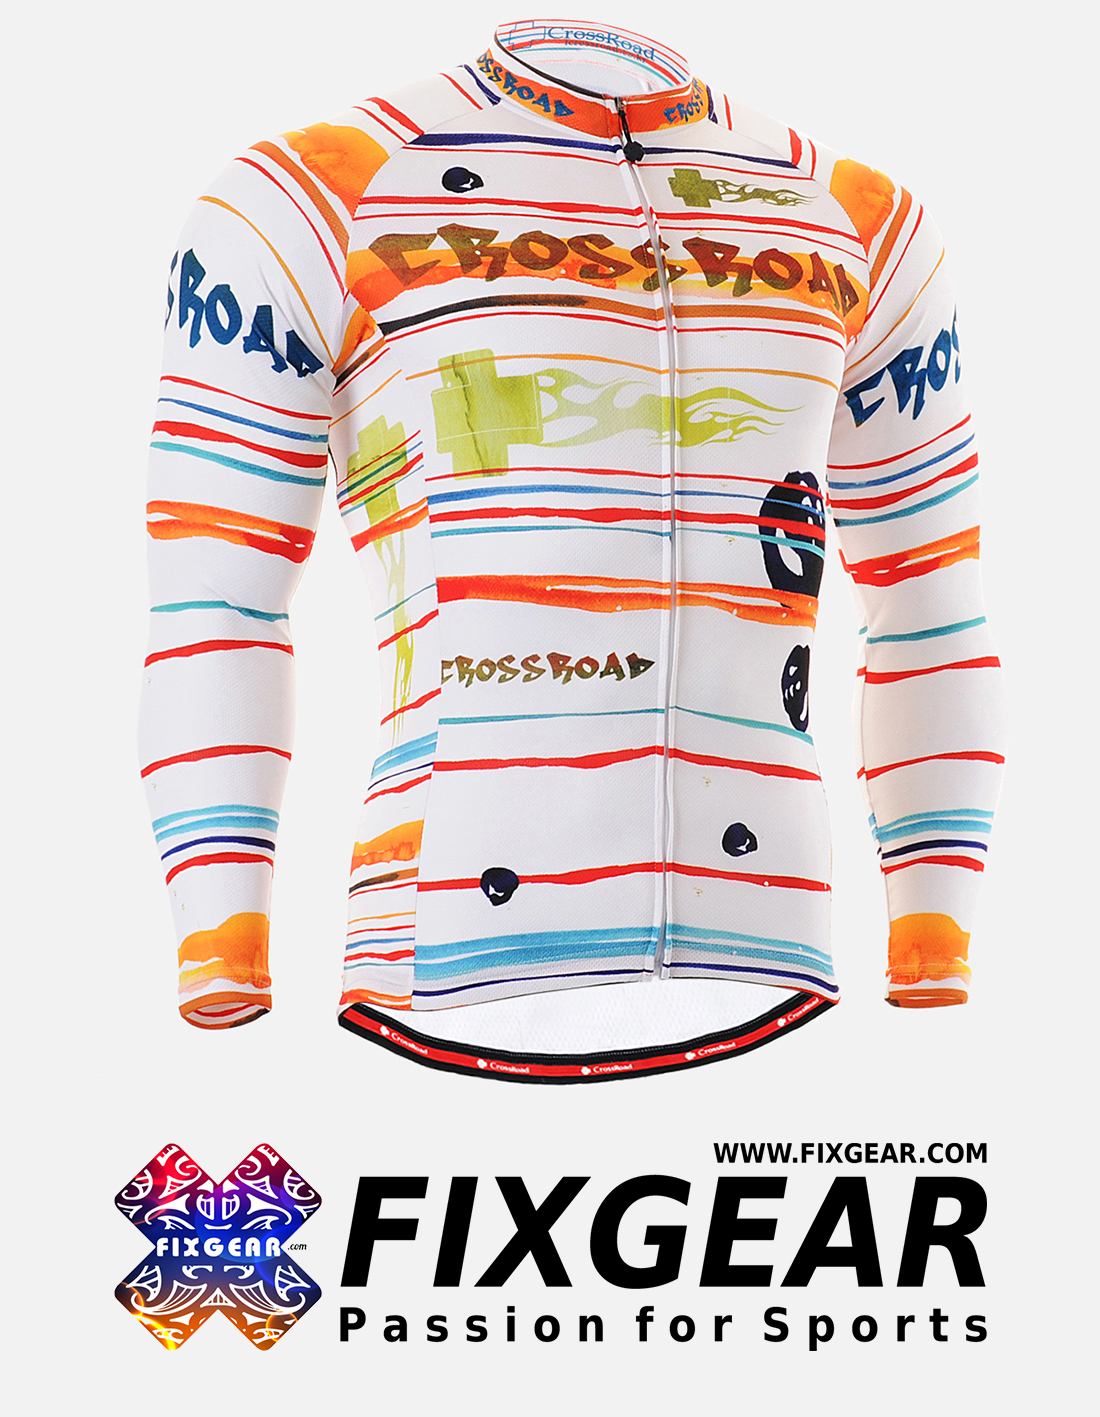 FIXGEAR CS-2001 Men's Cycling  Jersey Long Sleeve